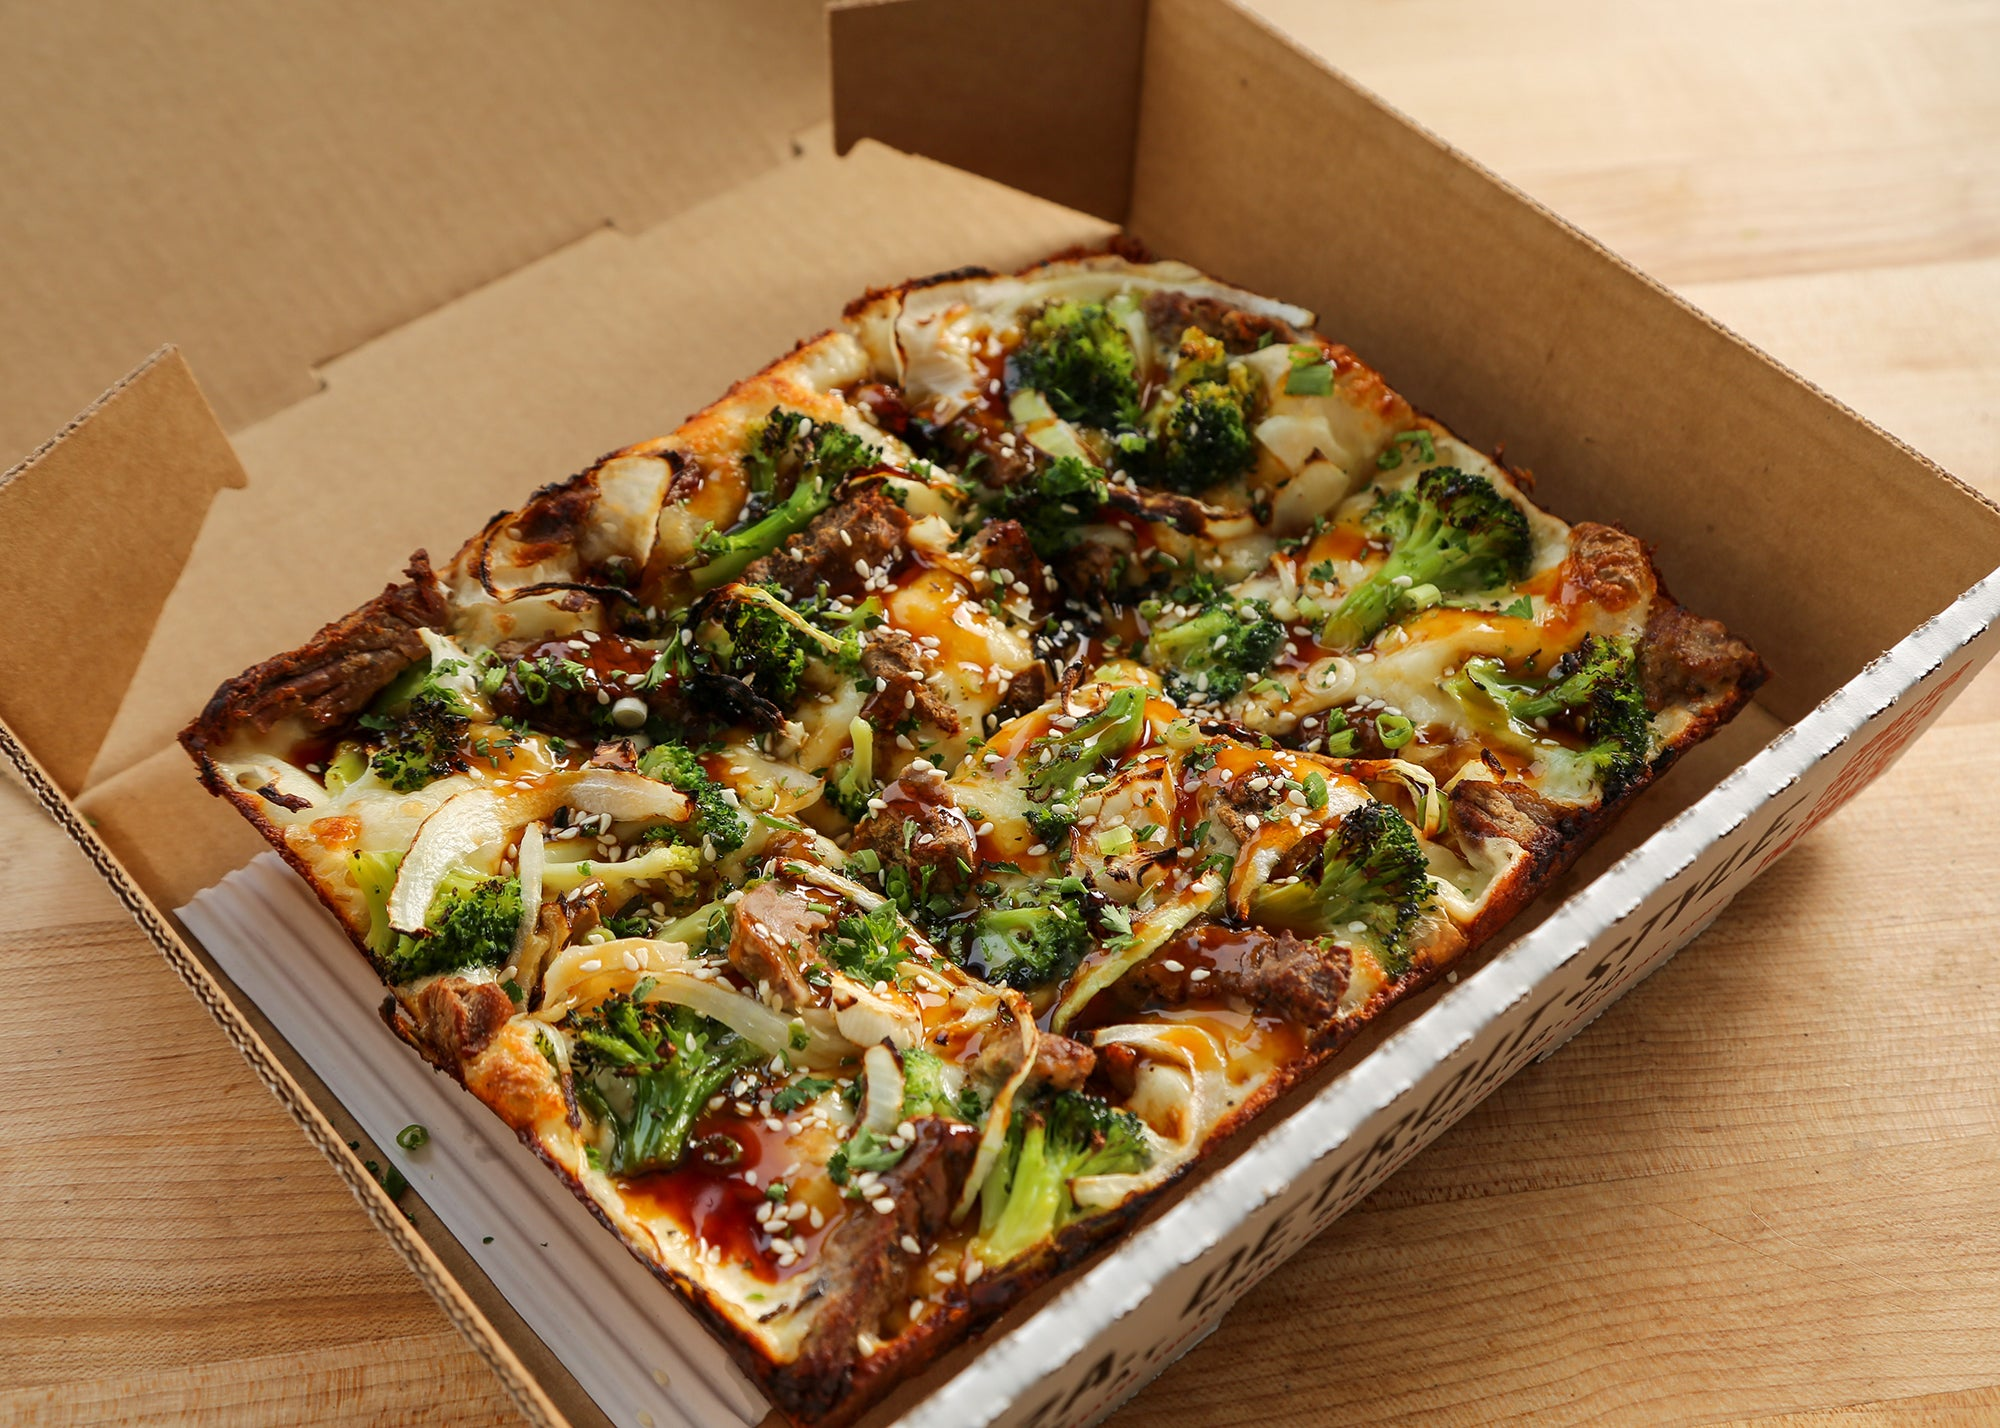 Beef and broccoli pizza at Square Mfg. Co.